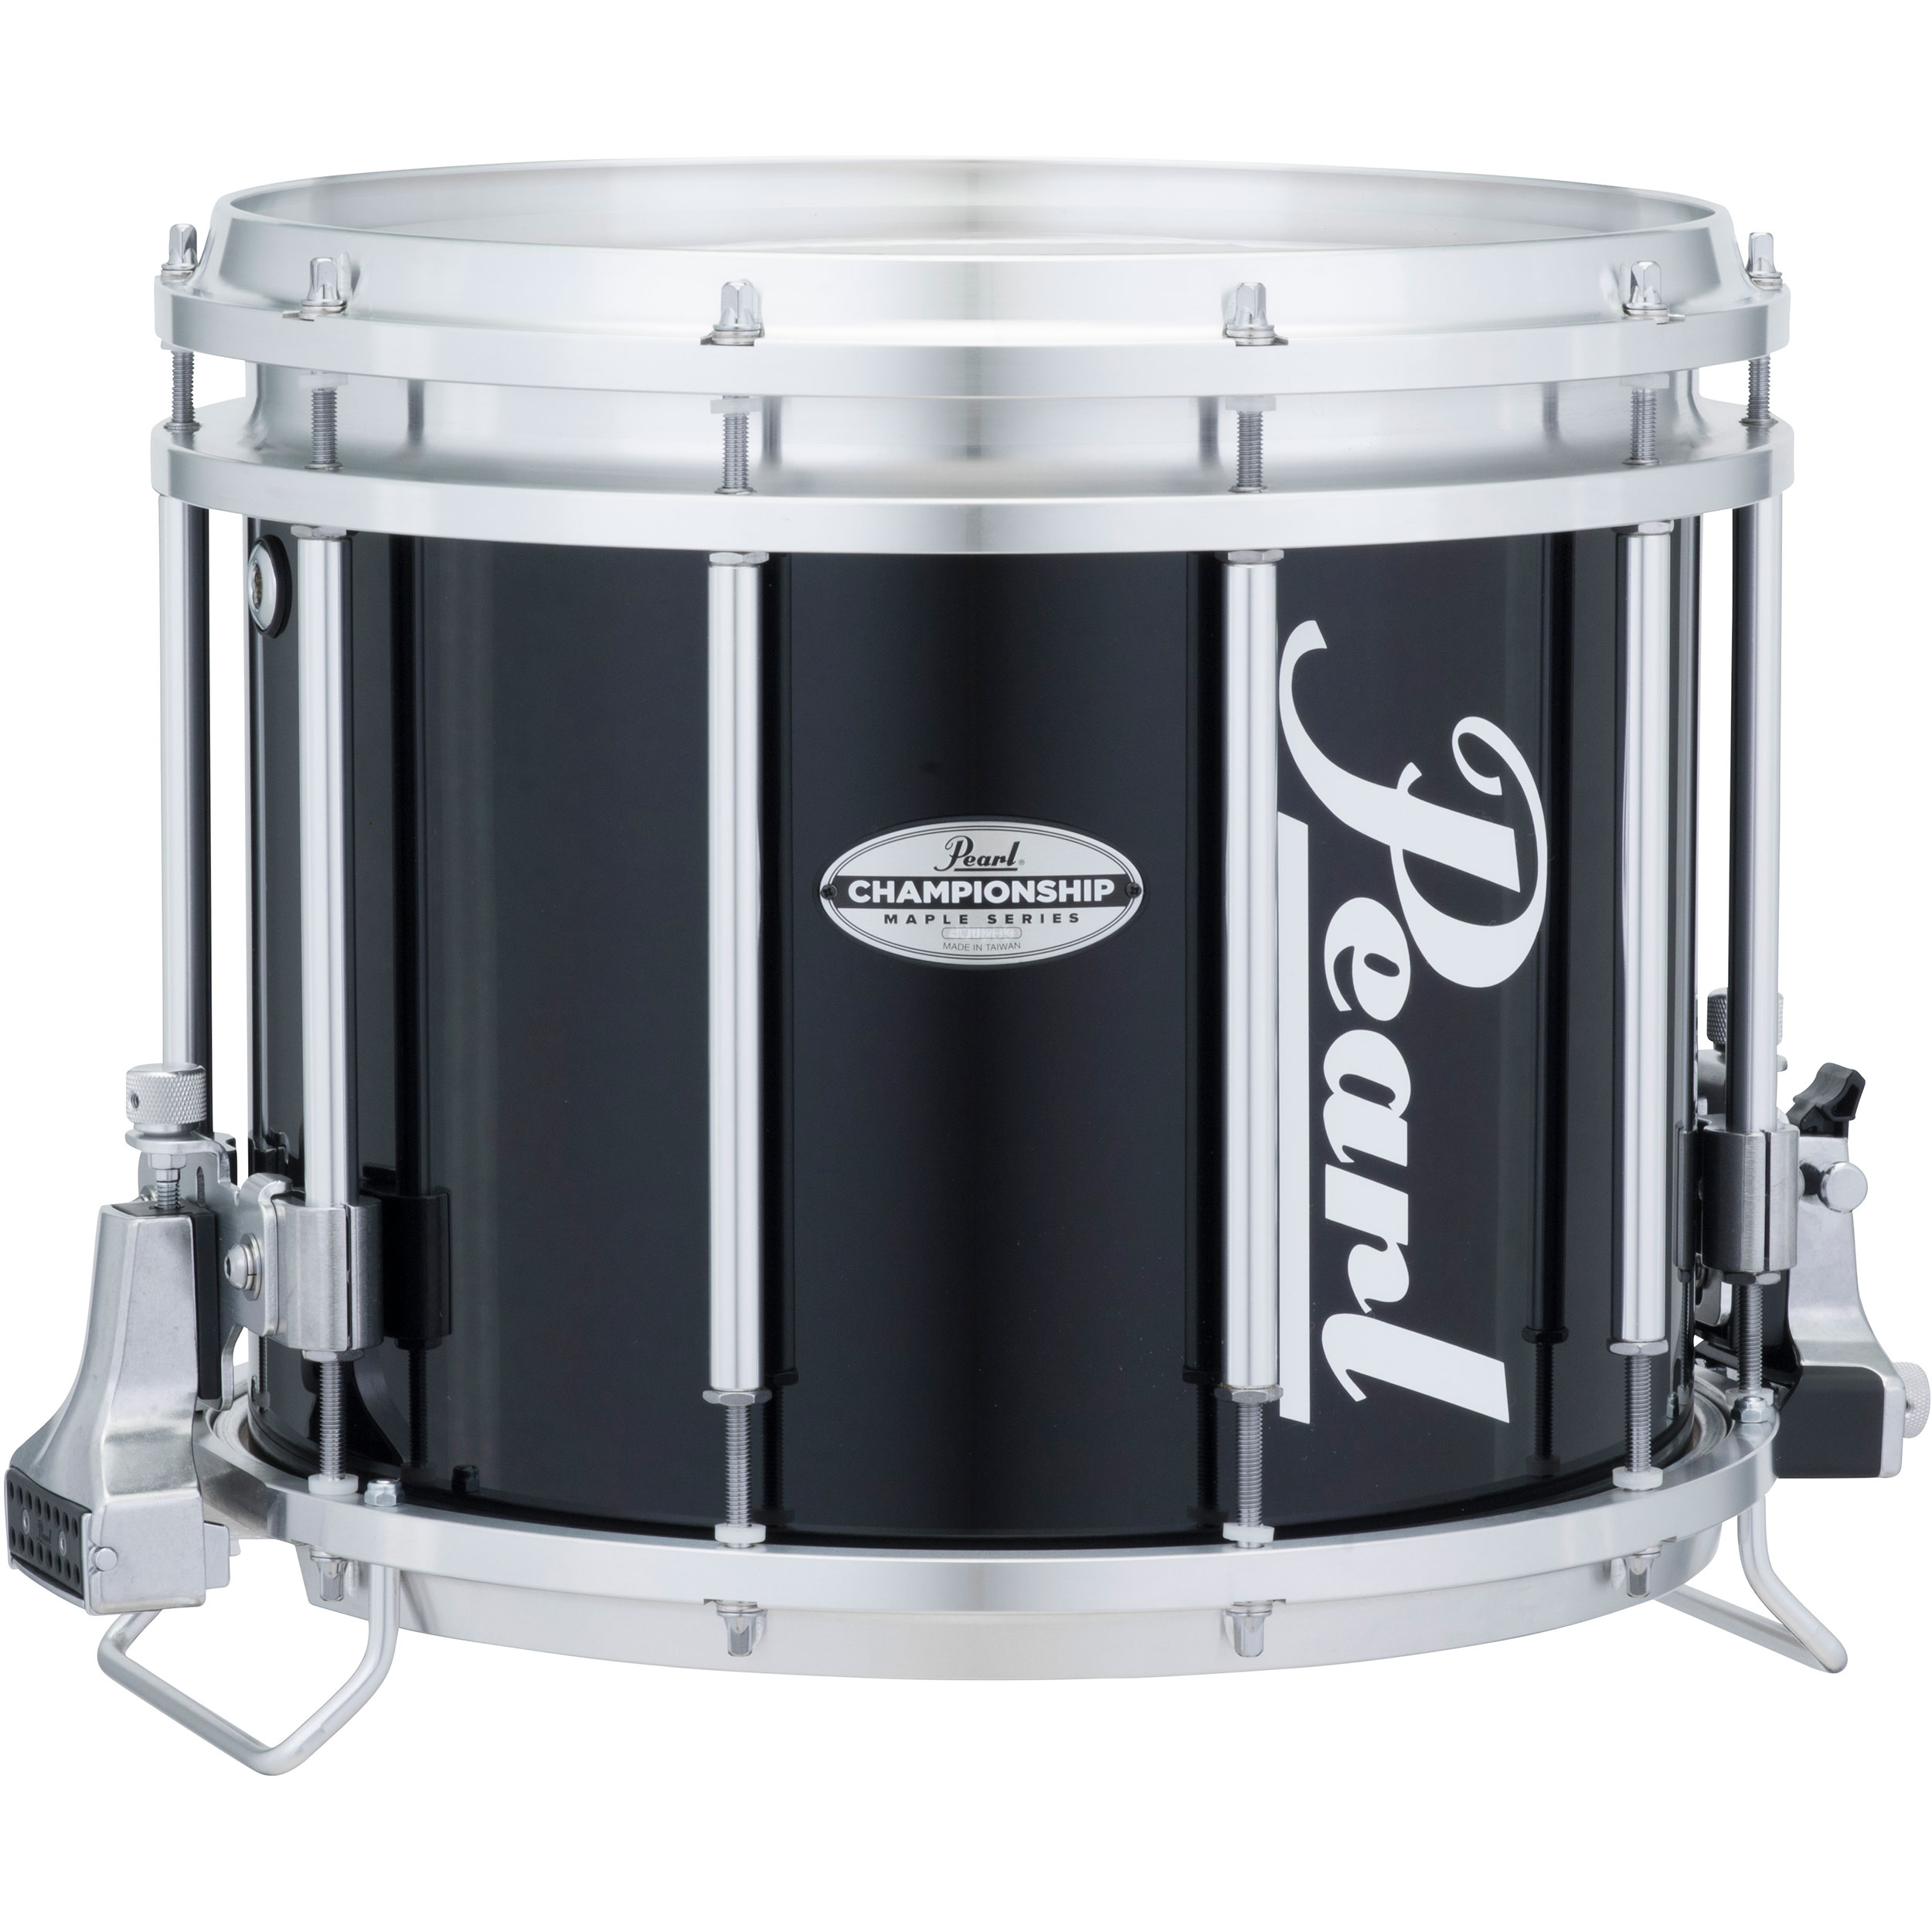 "Pearl 13"" (Diameter) x 11"" (Deep) FFXM Championship Maple Marching Snare Drum in Wrap Finish"